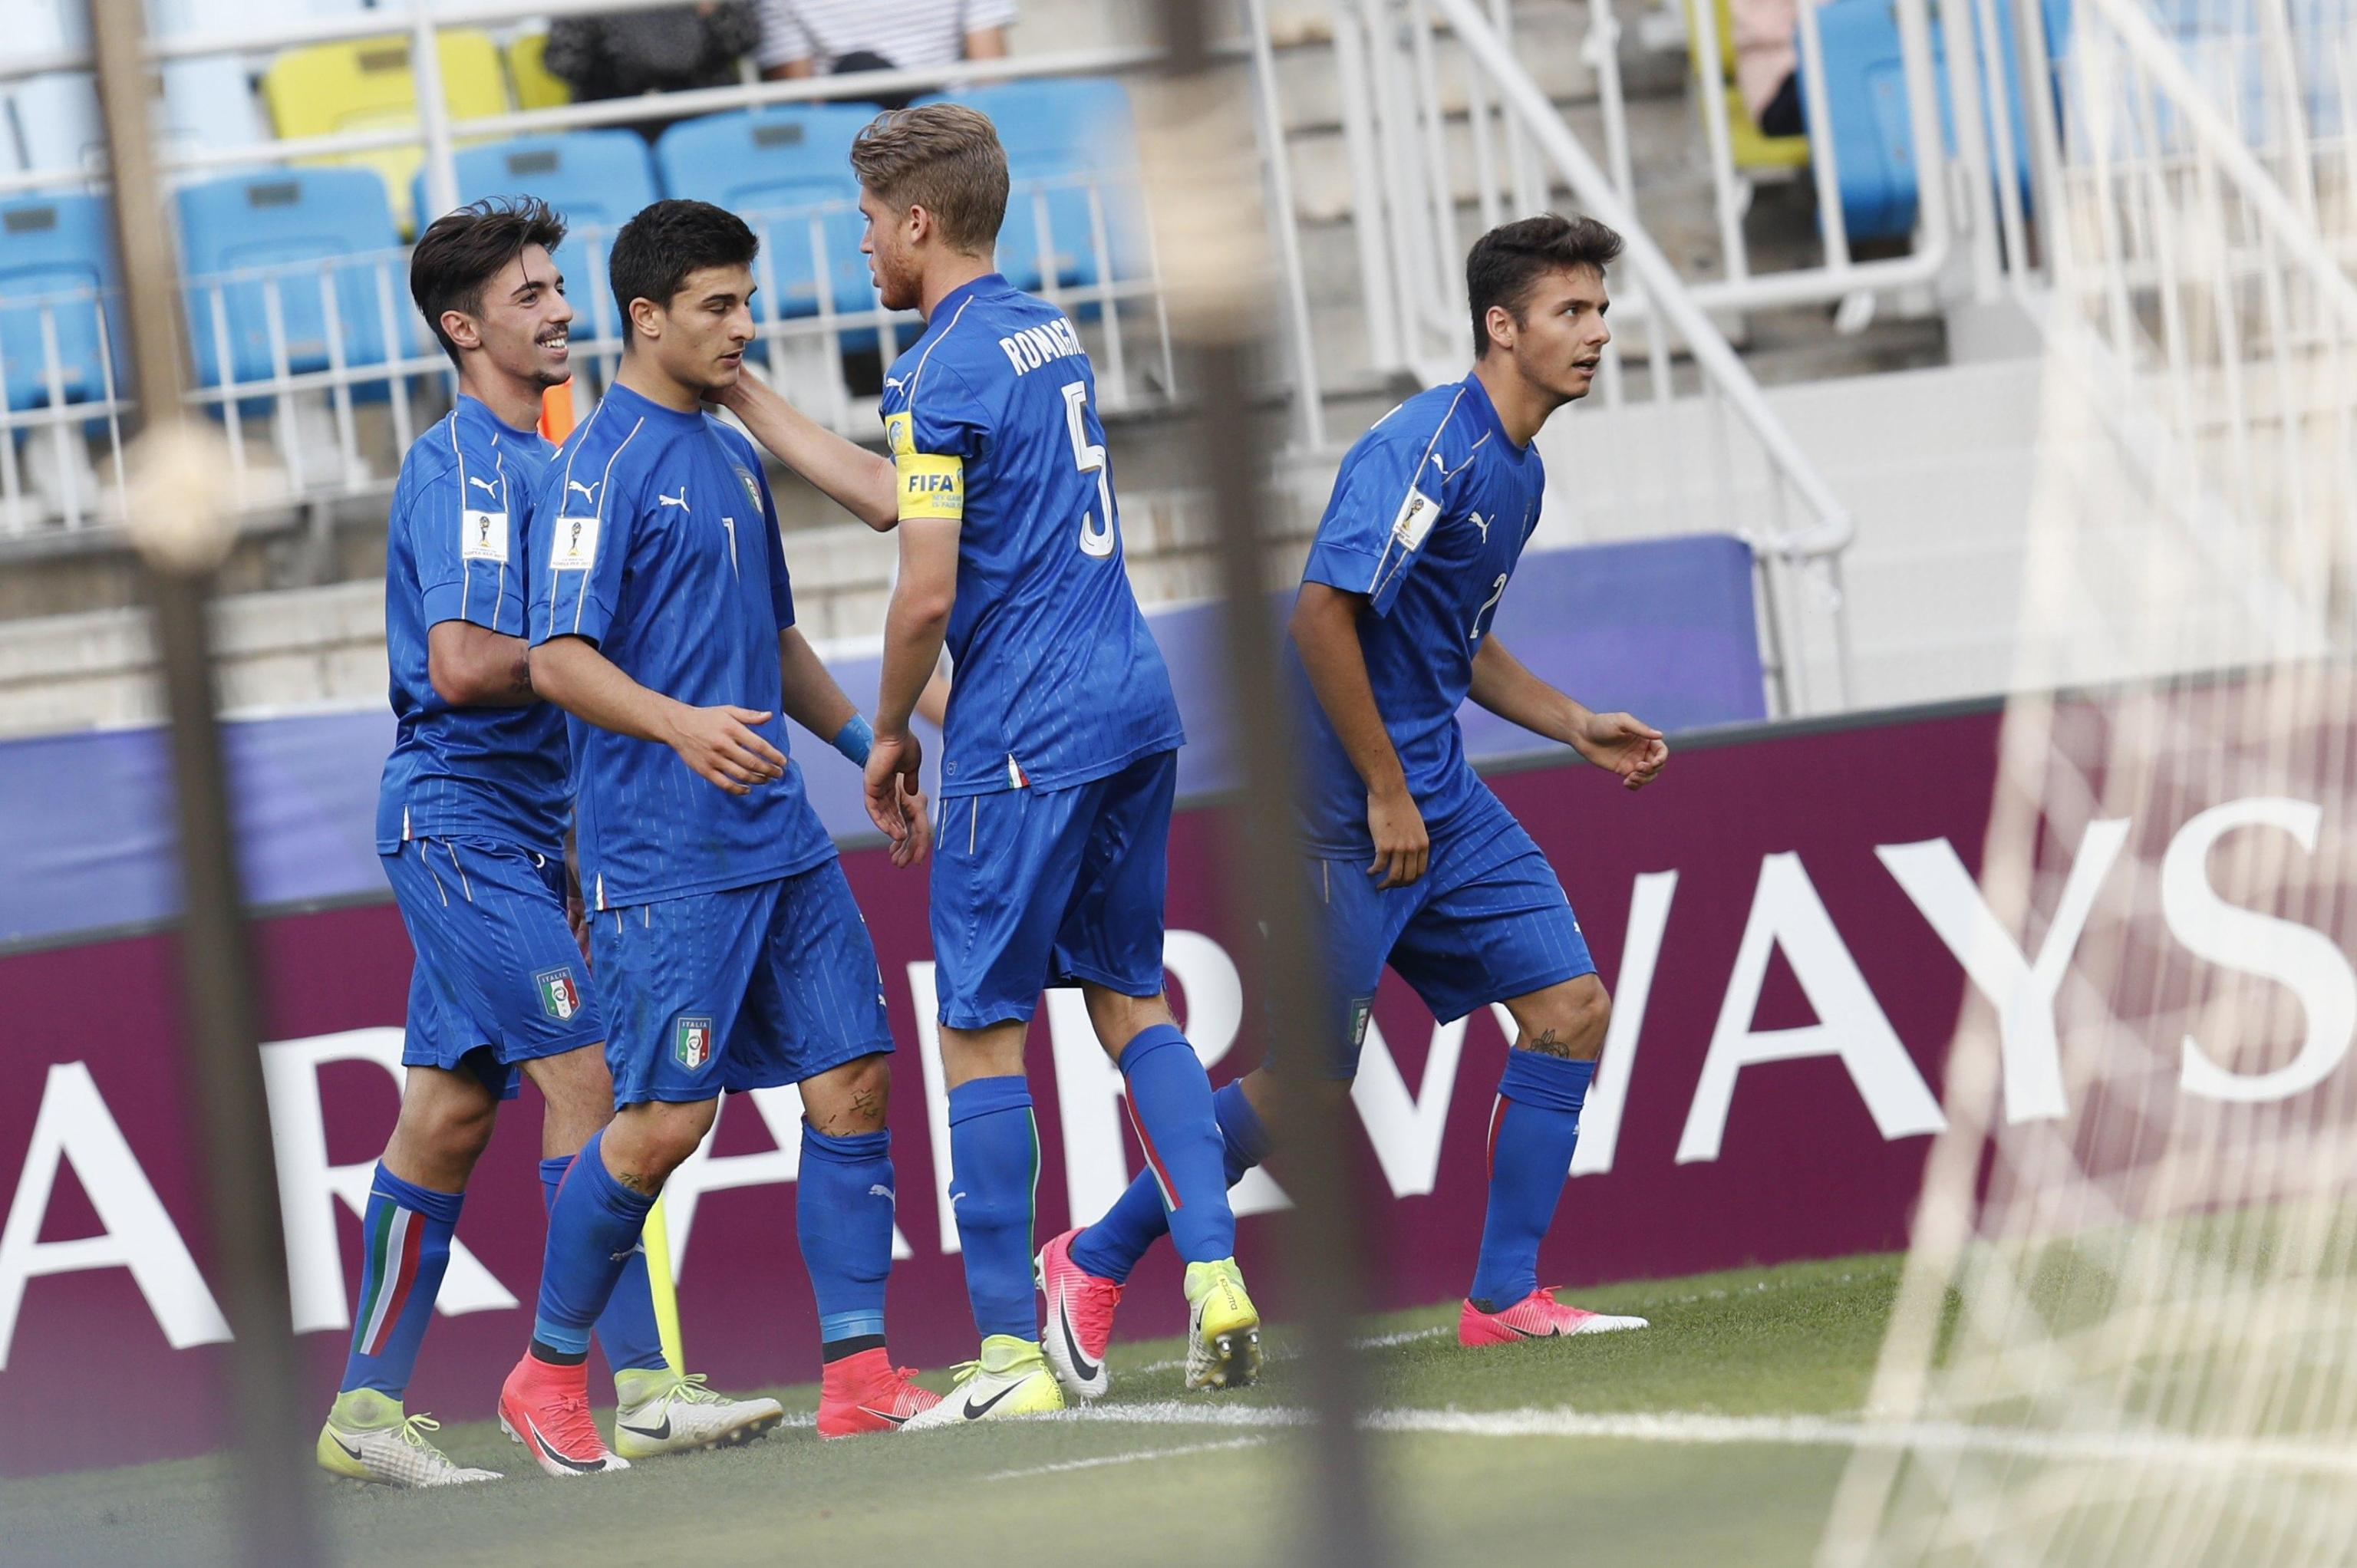 epa06011405 Riccardo Orsolini (2-L) of Italy celebrates with teammates after scoring against Zambia during the quarterfinal match of the FIFA U-20 World Cup 2017 between Italy and Zambia in Suwon World Cup Stadium, South Korea, 05 June 2017. EPA/JEON HEON-KYUN